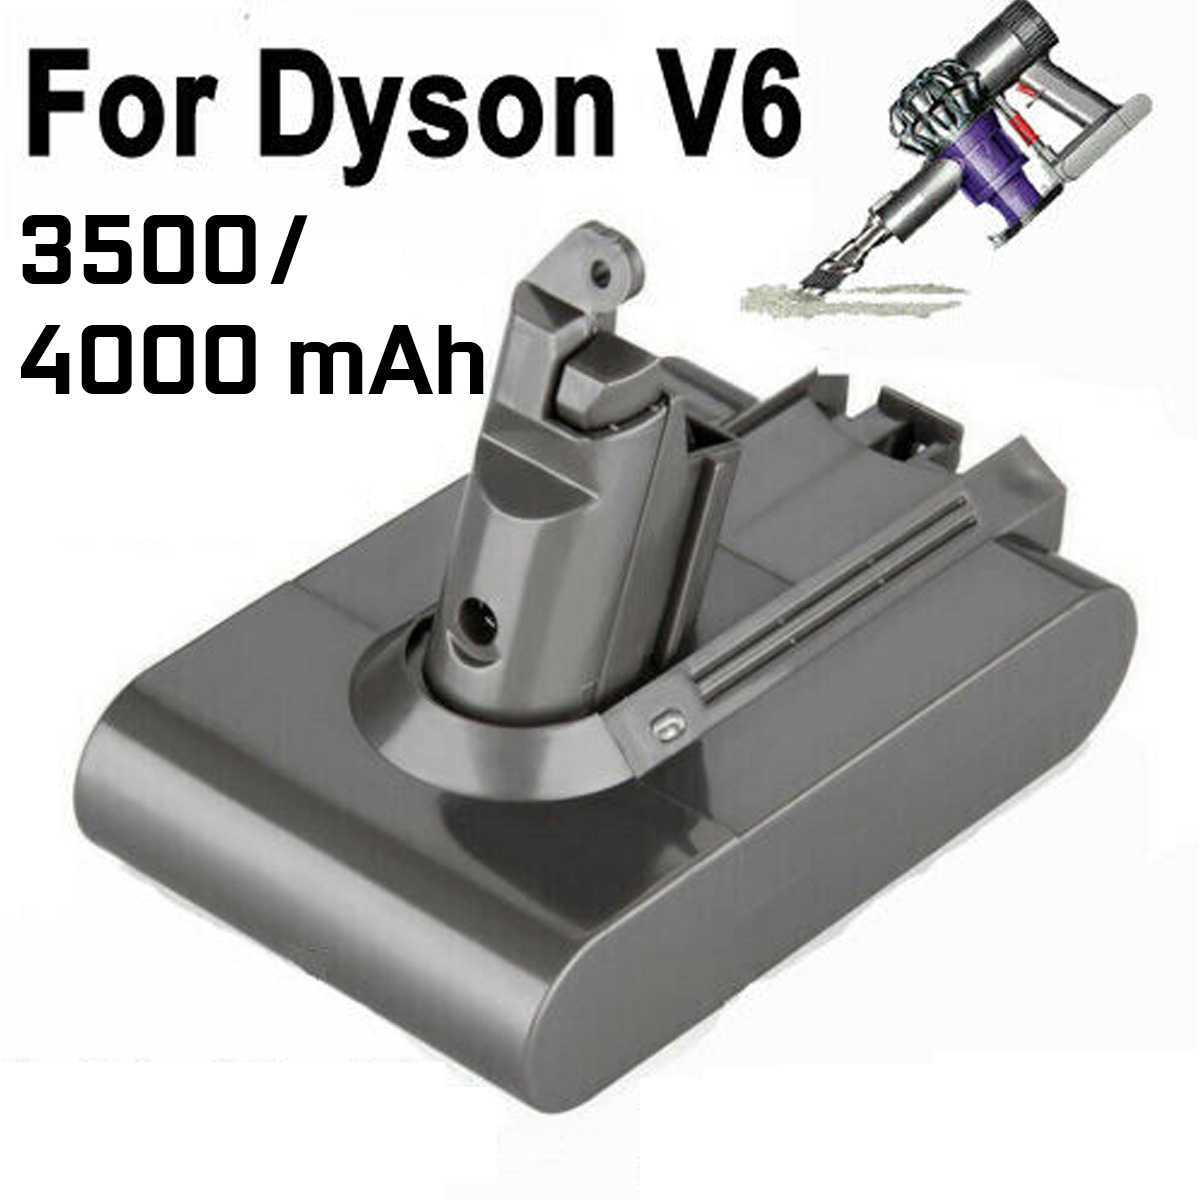 4000mAh 3500mAh Li-ion Battery For Dyson V6 DC58 59 61 62 72 74 Vacuum Cleaner Accessories Kit Replacement Battery